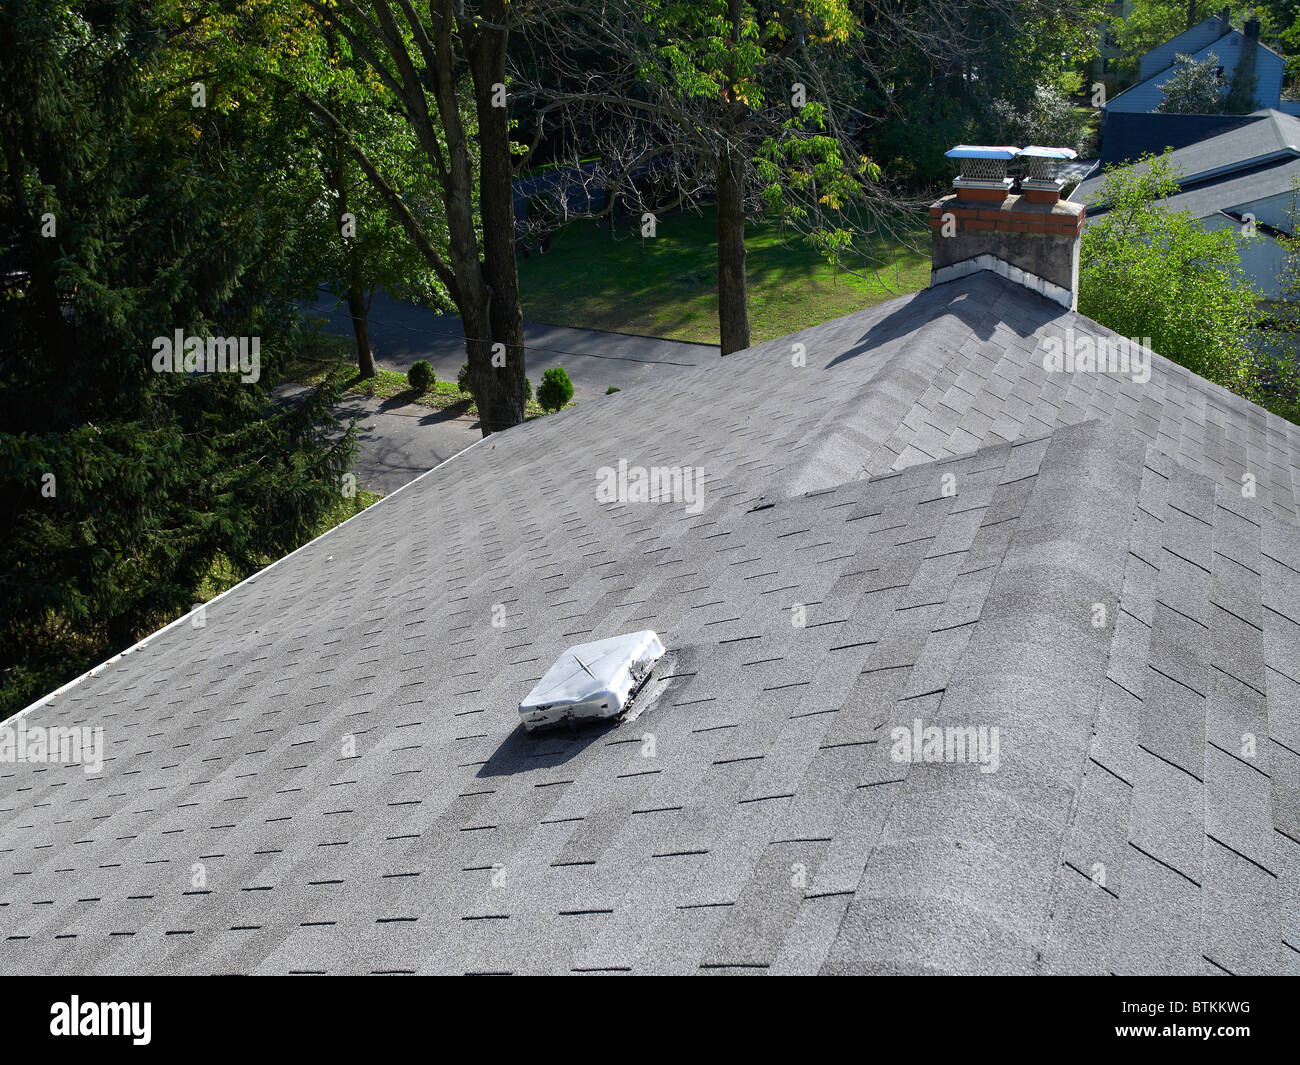 House Roof With Roof Vent And Chimney, Philadelphia, USA - Stock Image